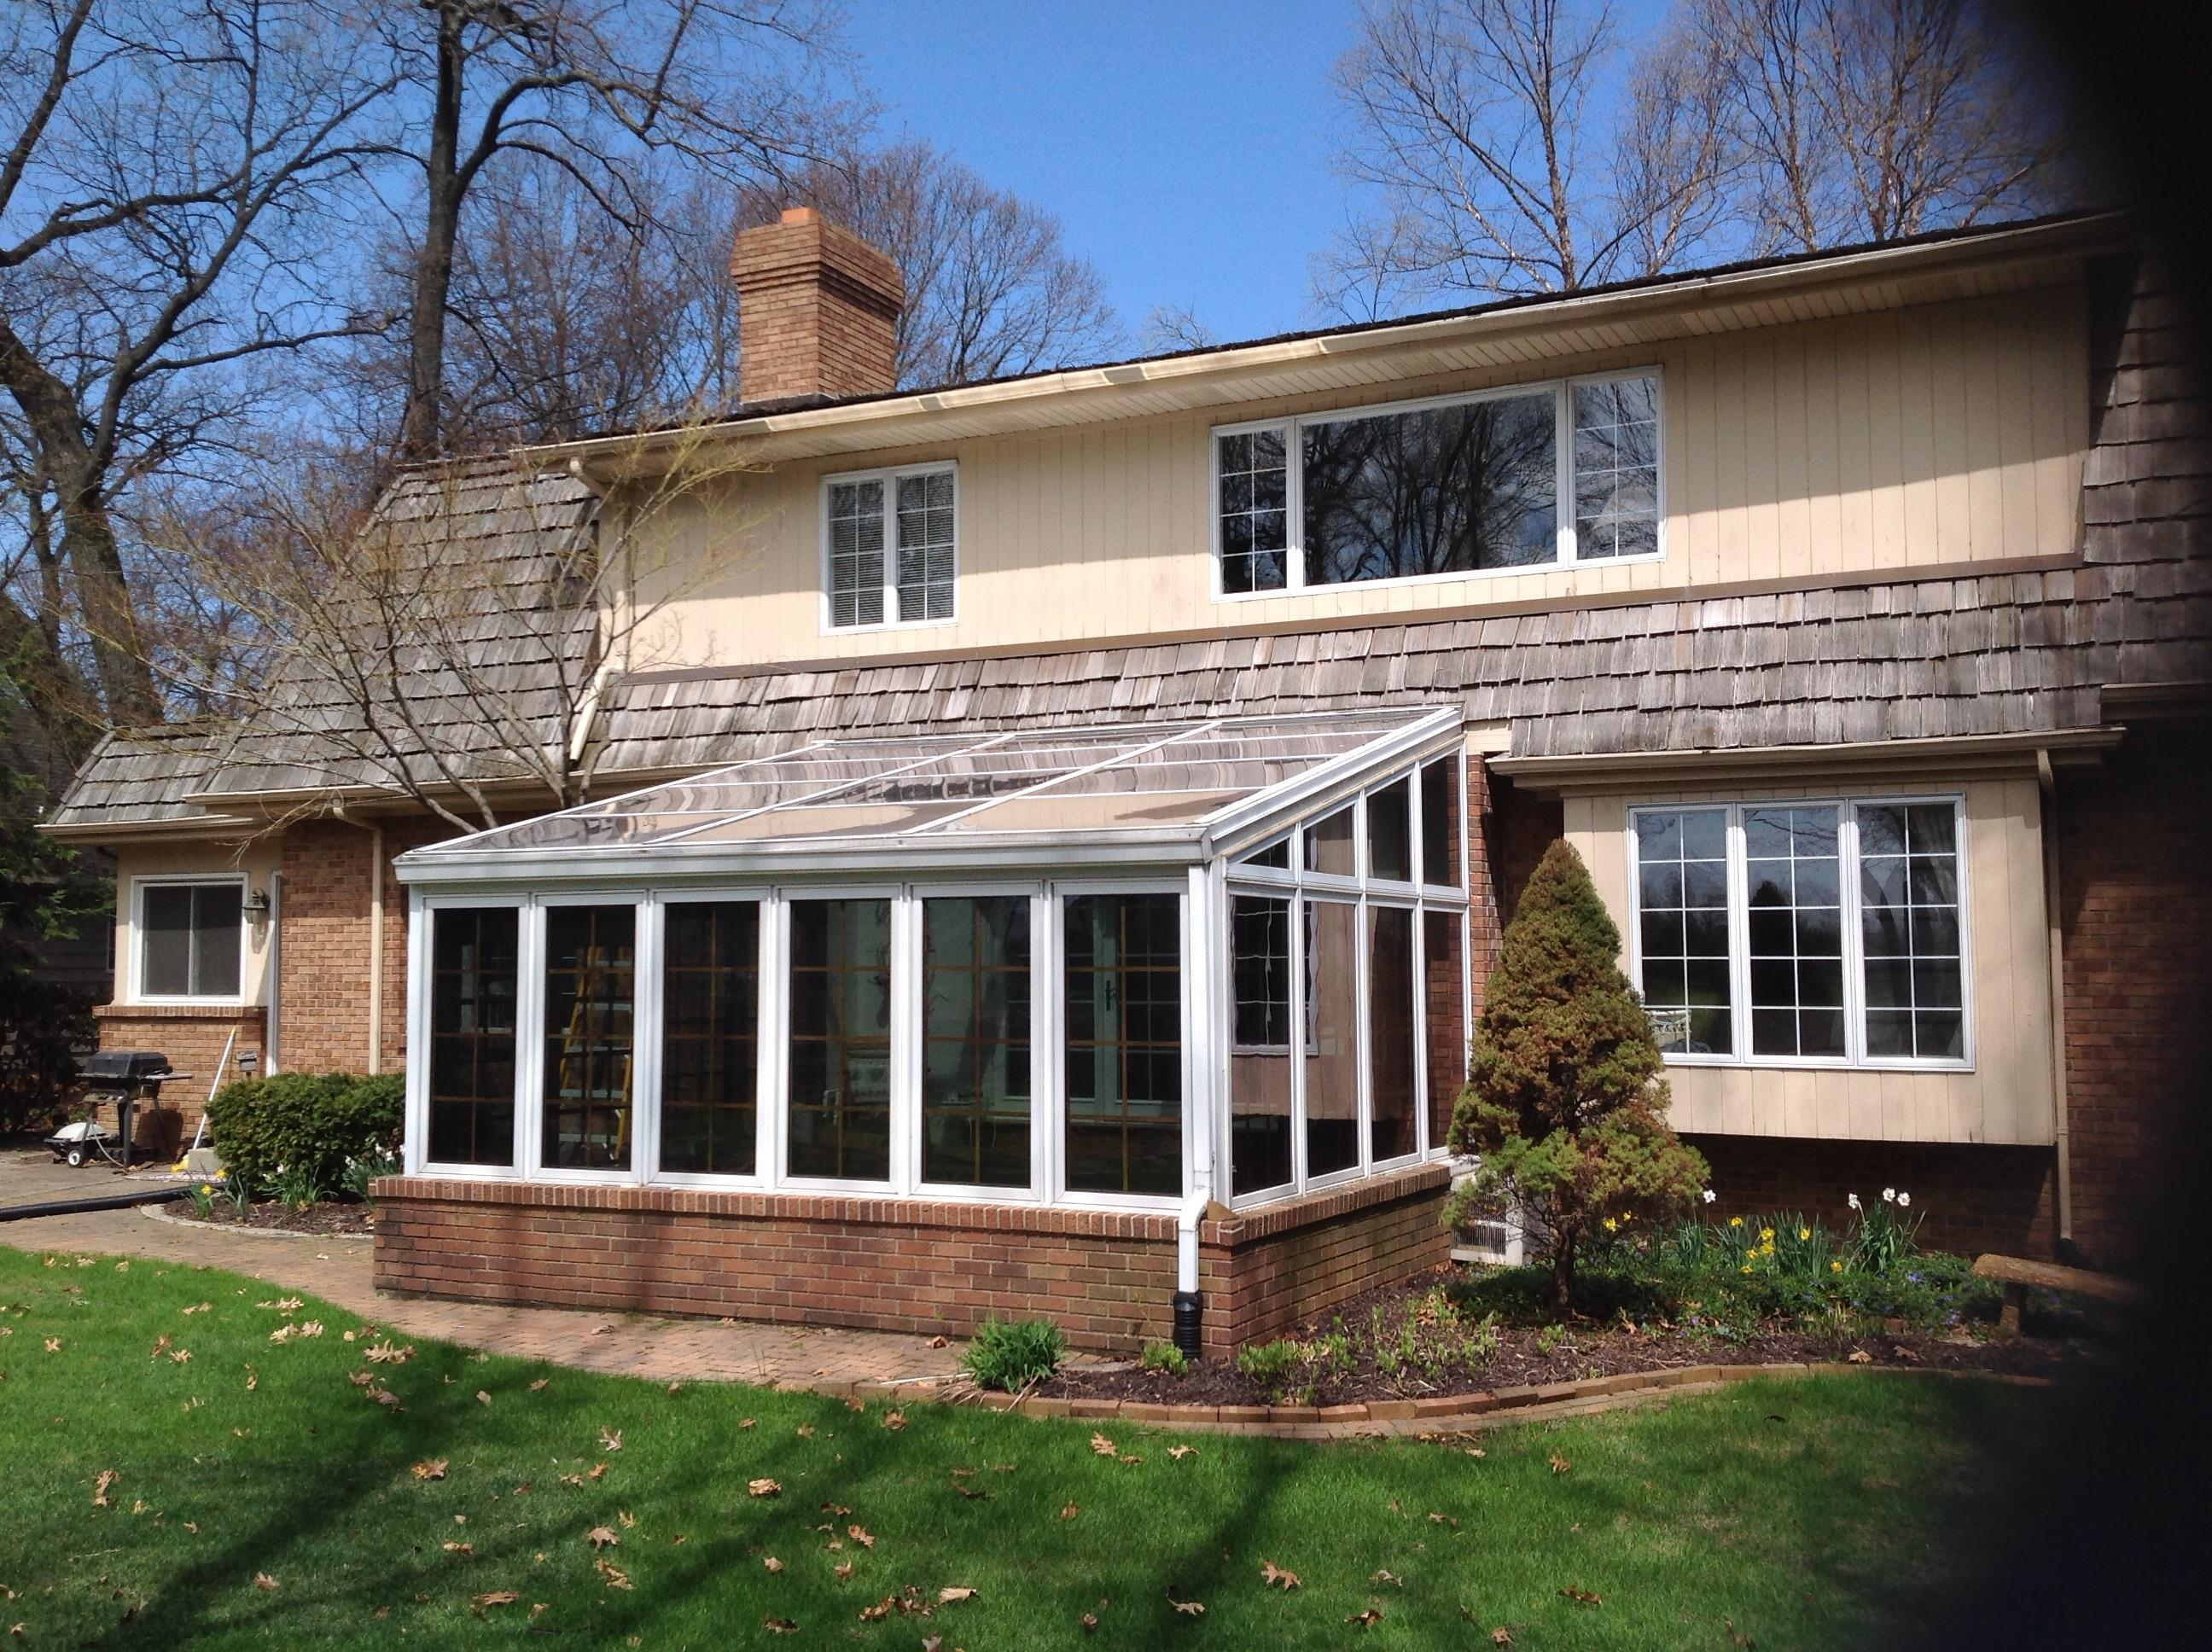 Four seasons sunrooms in merrillville in 46410 for 4 season sunrooms